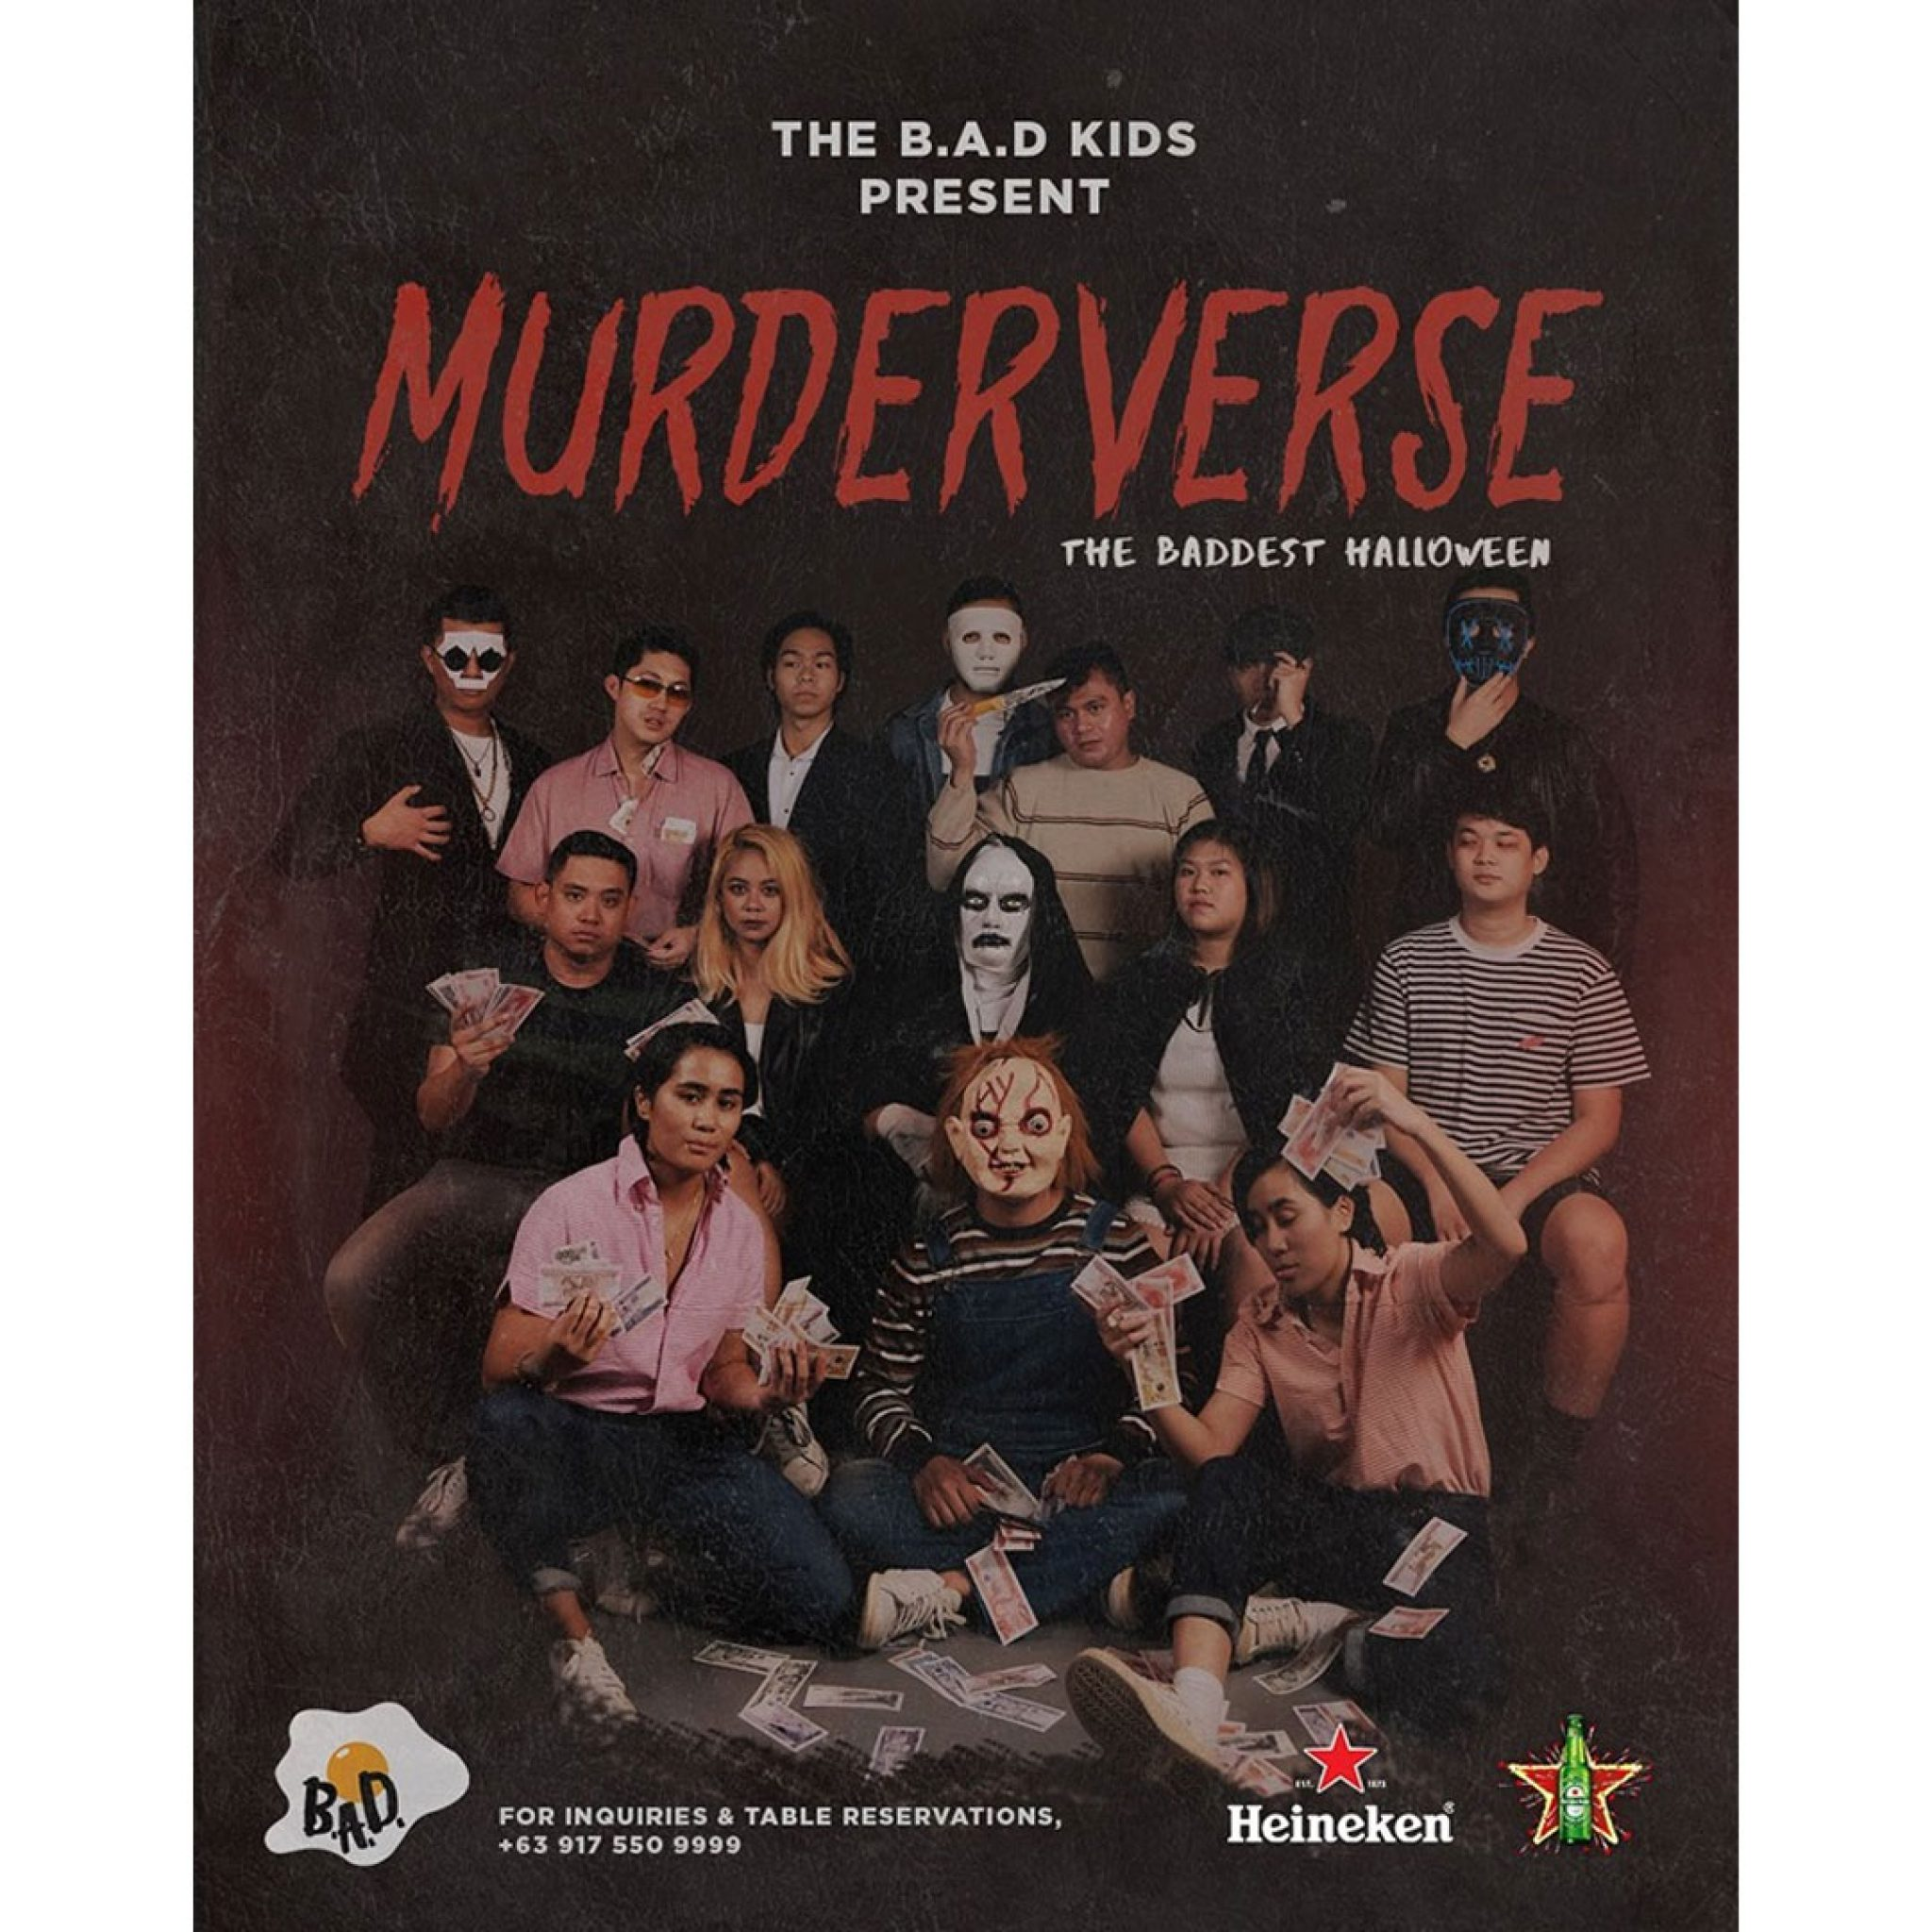 BAD's Murderverse: The Baddest Halloween